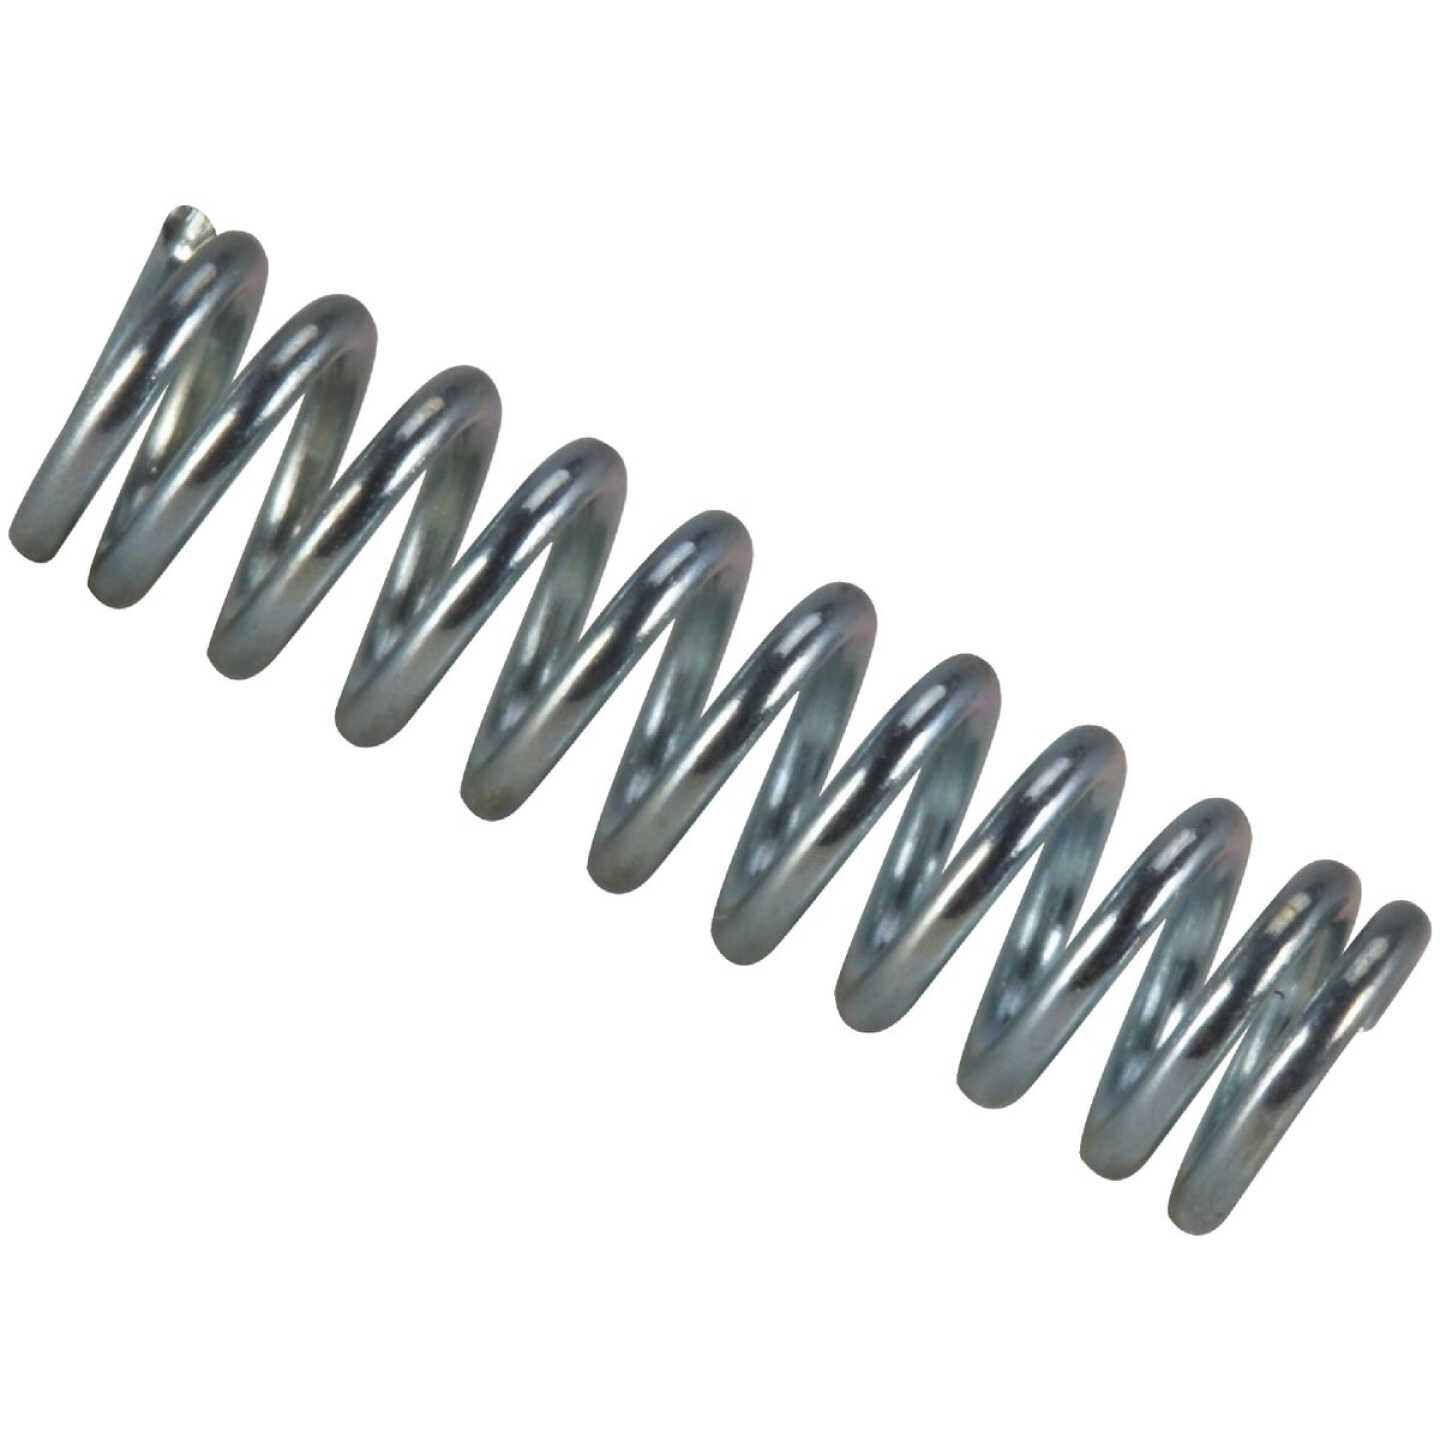 Century Spring 4 In. x 7/8 In. Compression Spring (2 Count) Image 1